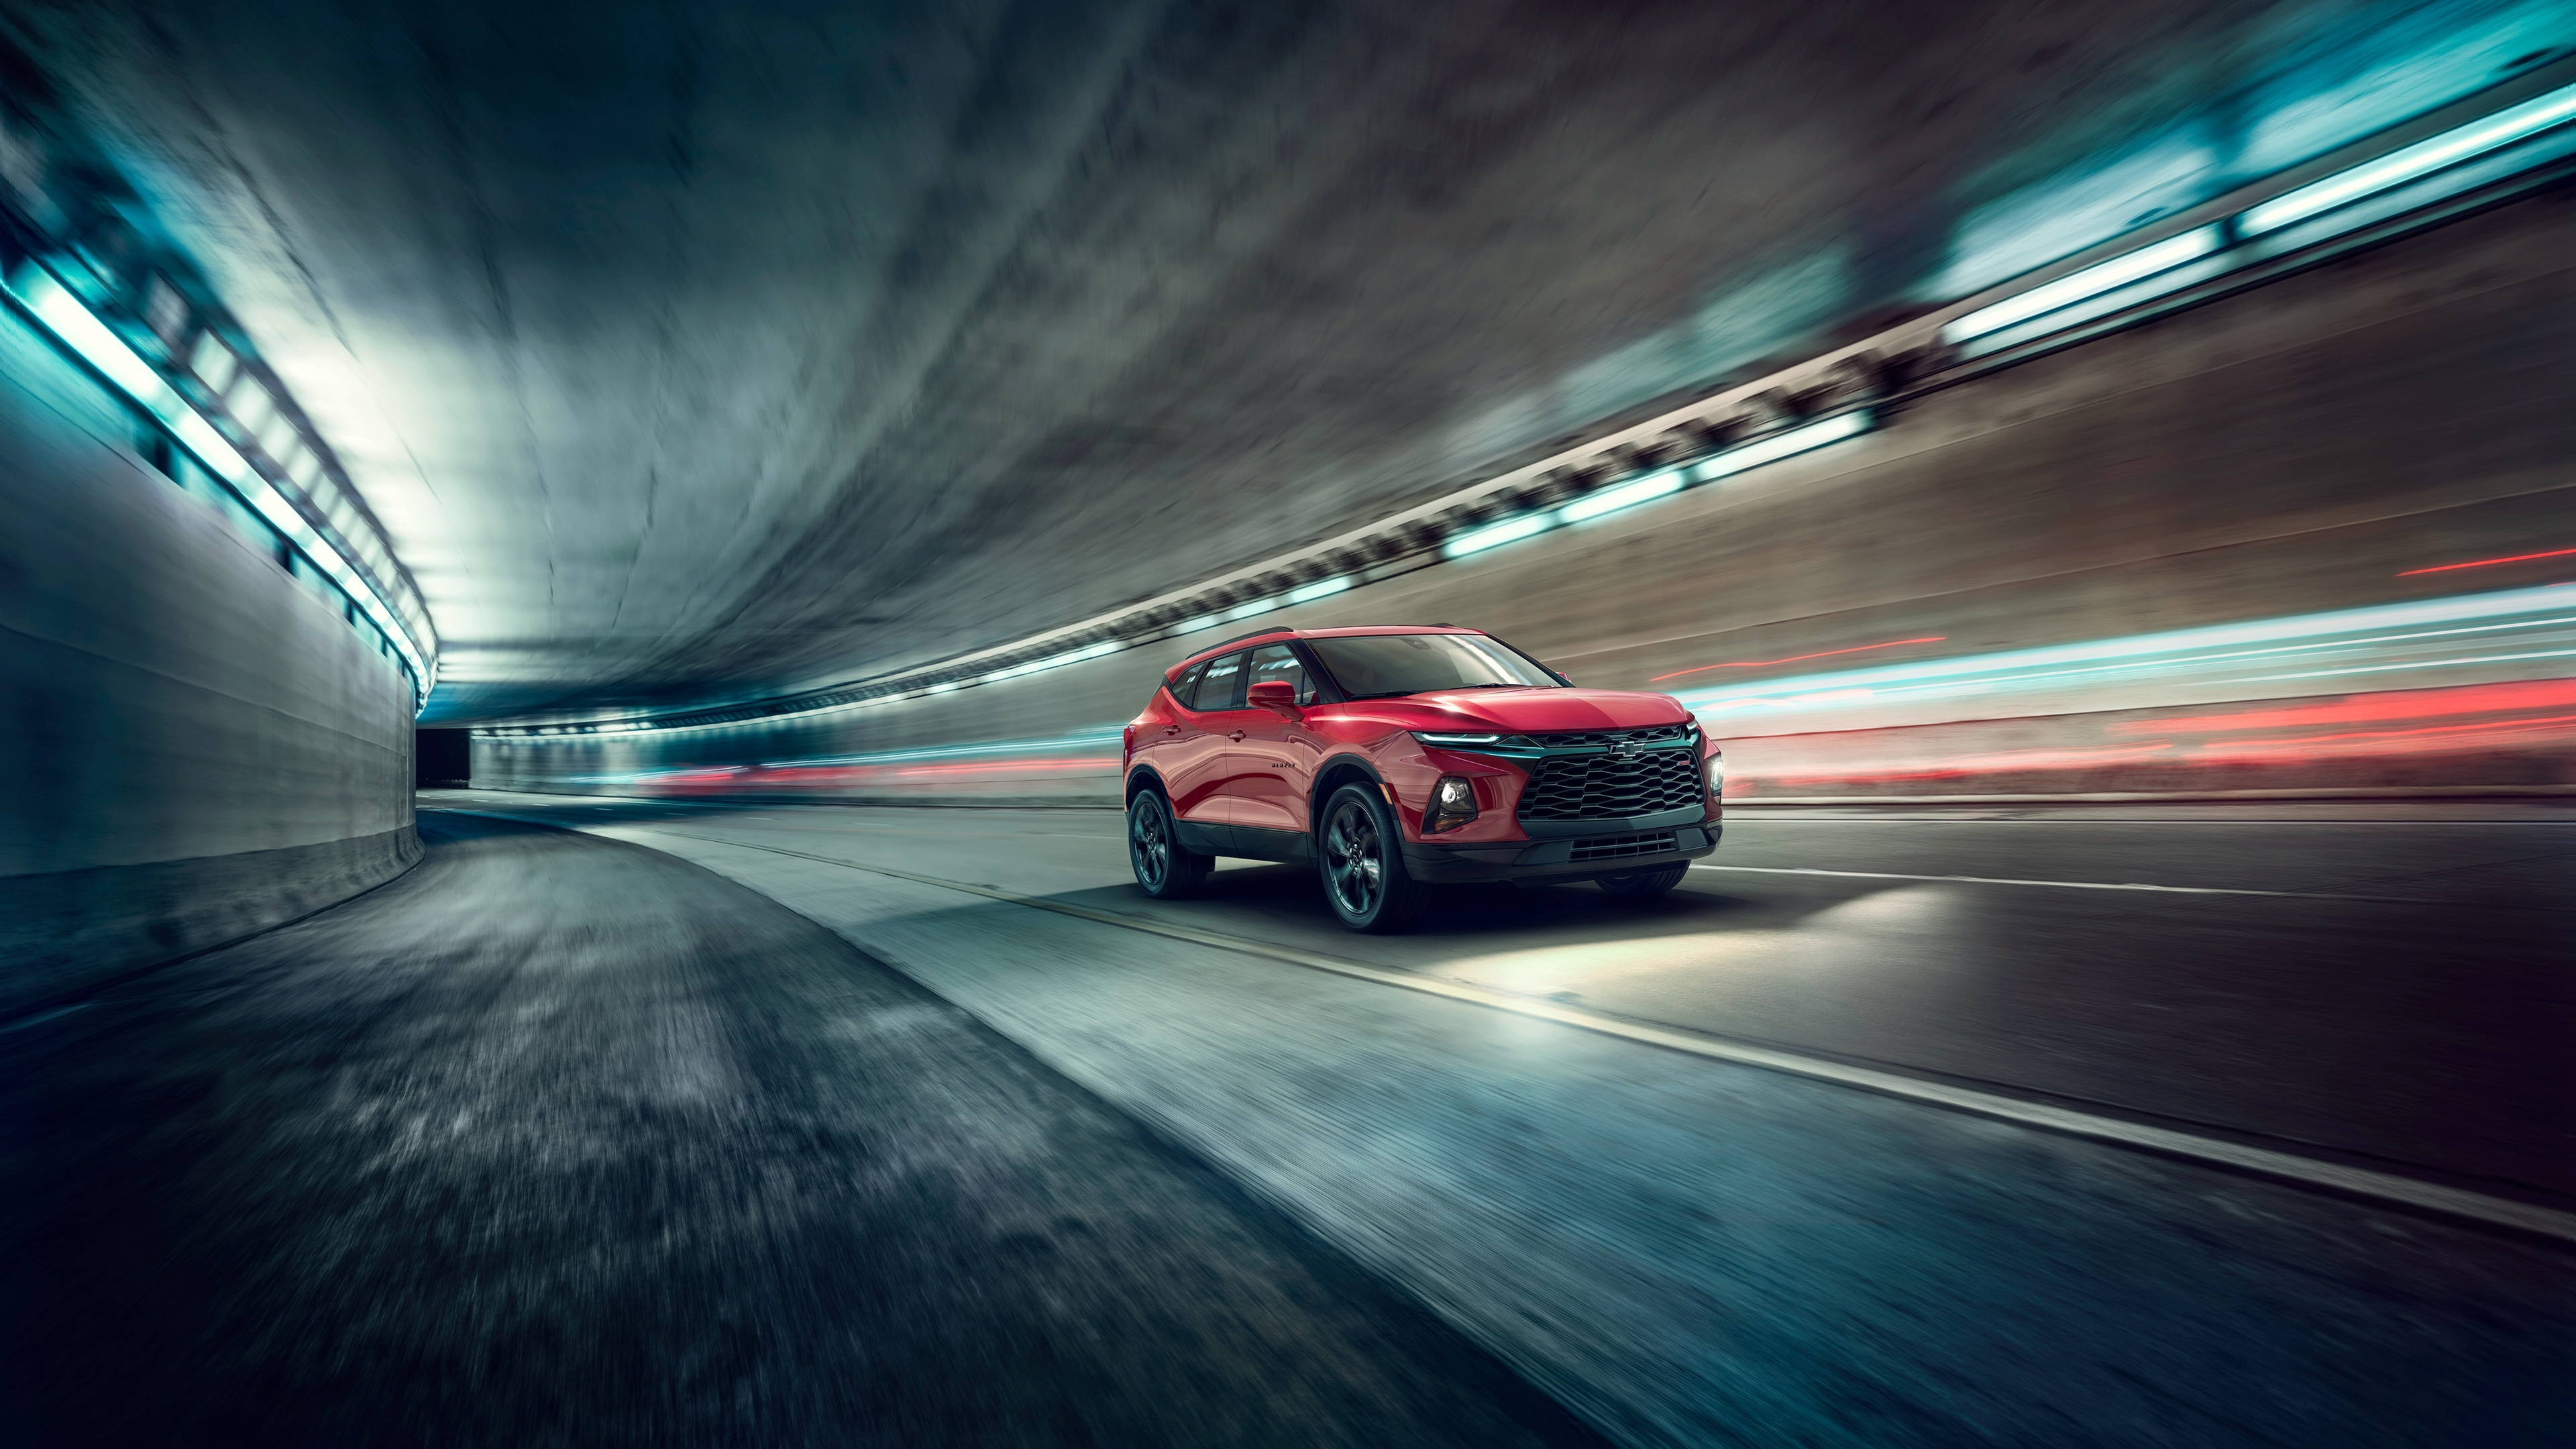 2019 chevrolet blazer rs 1539111930 - 2019 Chevrolet Blazer RS - hd-wallpapers, chevrolet blazer rs wallpapers, cars wallpapers, 4k-wallpapers, 2019 cars wallpapers